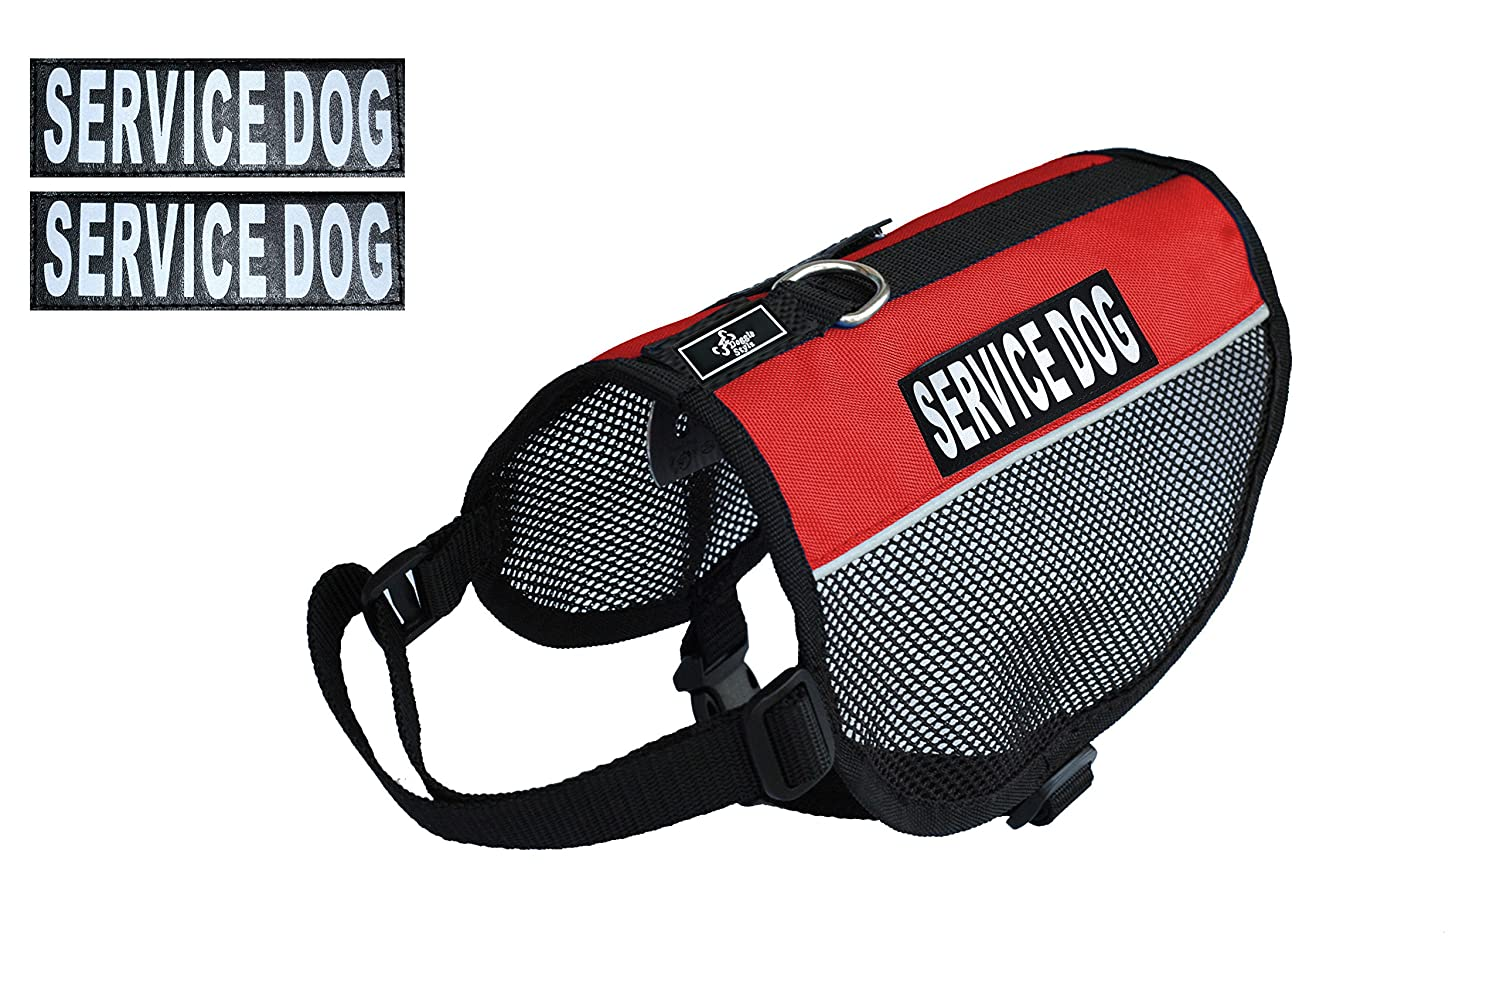 Red Girth 8-10\ Red Girth 8-10\ Service Dog mesh Vest Harness Cool Comfort Nylon for Dogs Small Medium Large Purchase Comes with 2 Reflective Service Dog Removable Patches. Please Measure Your Dog Before Ordering